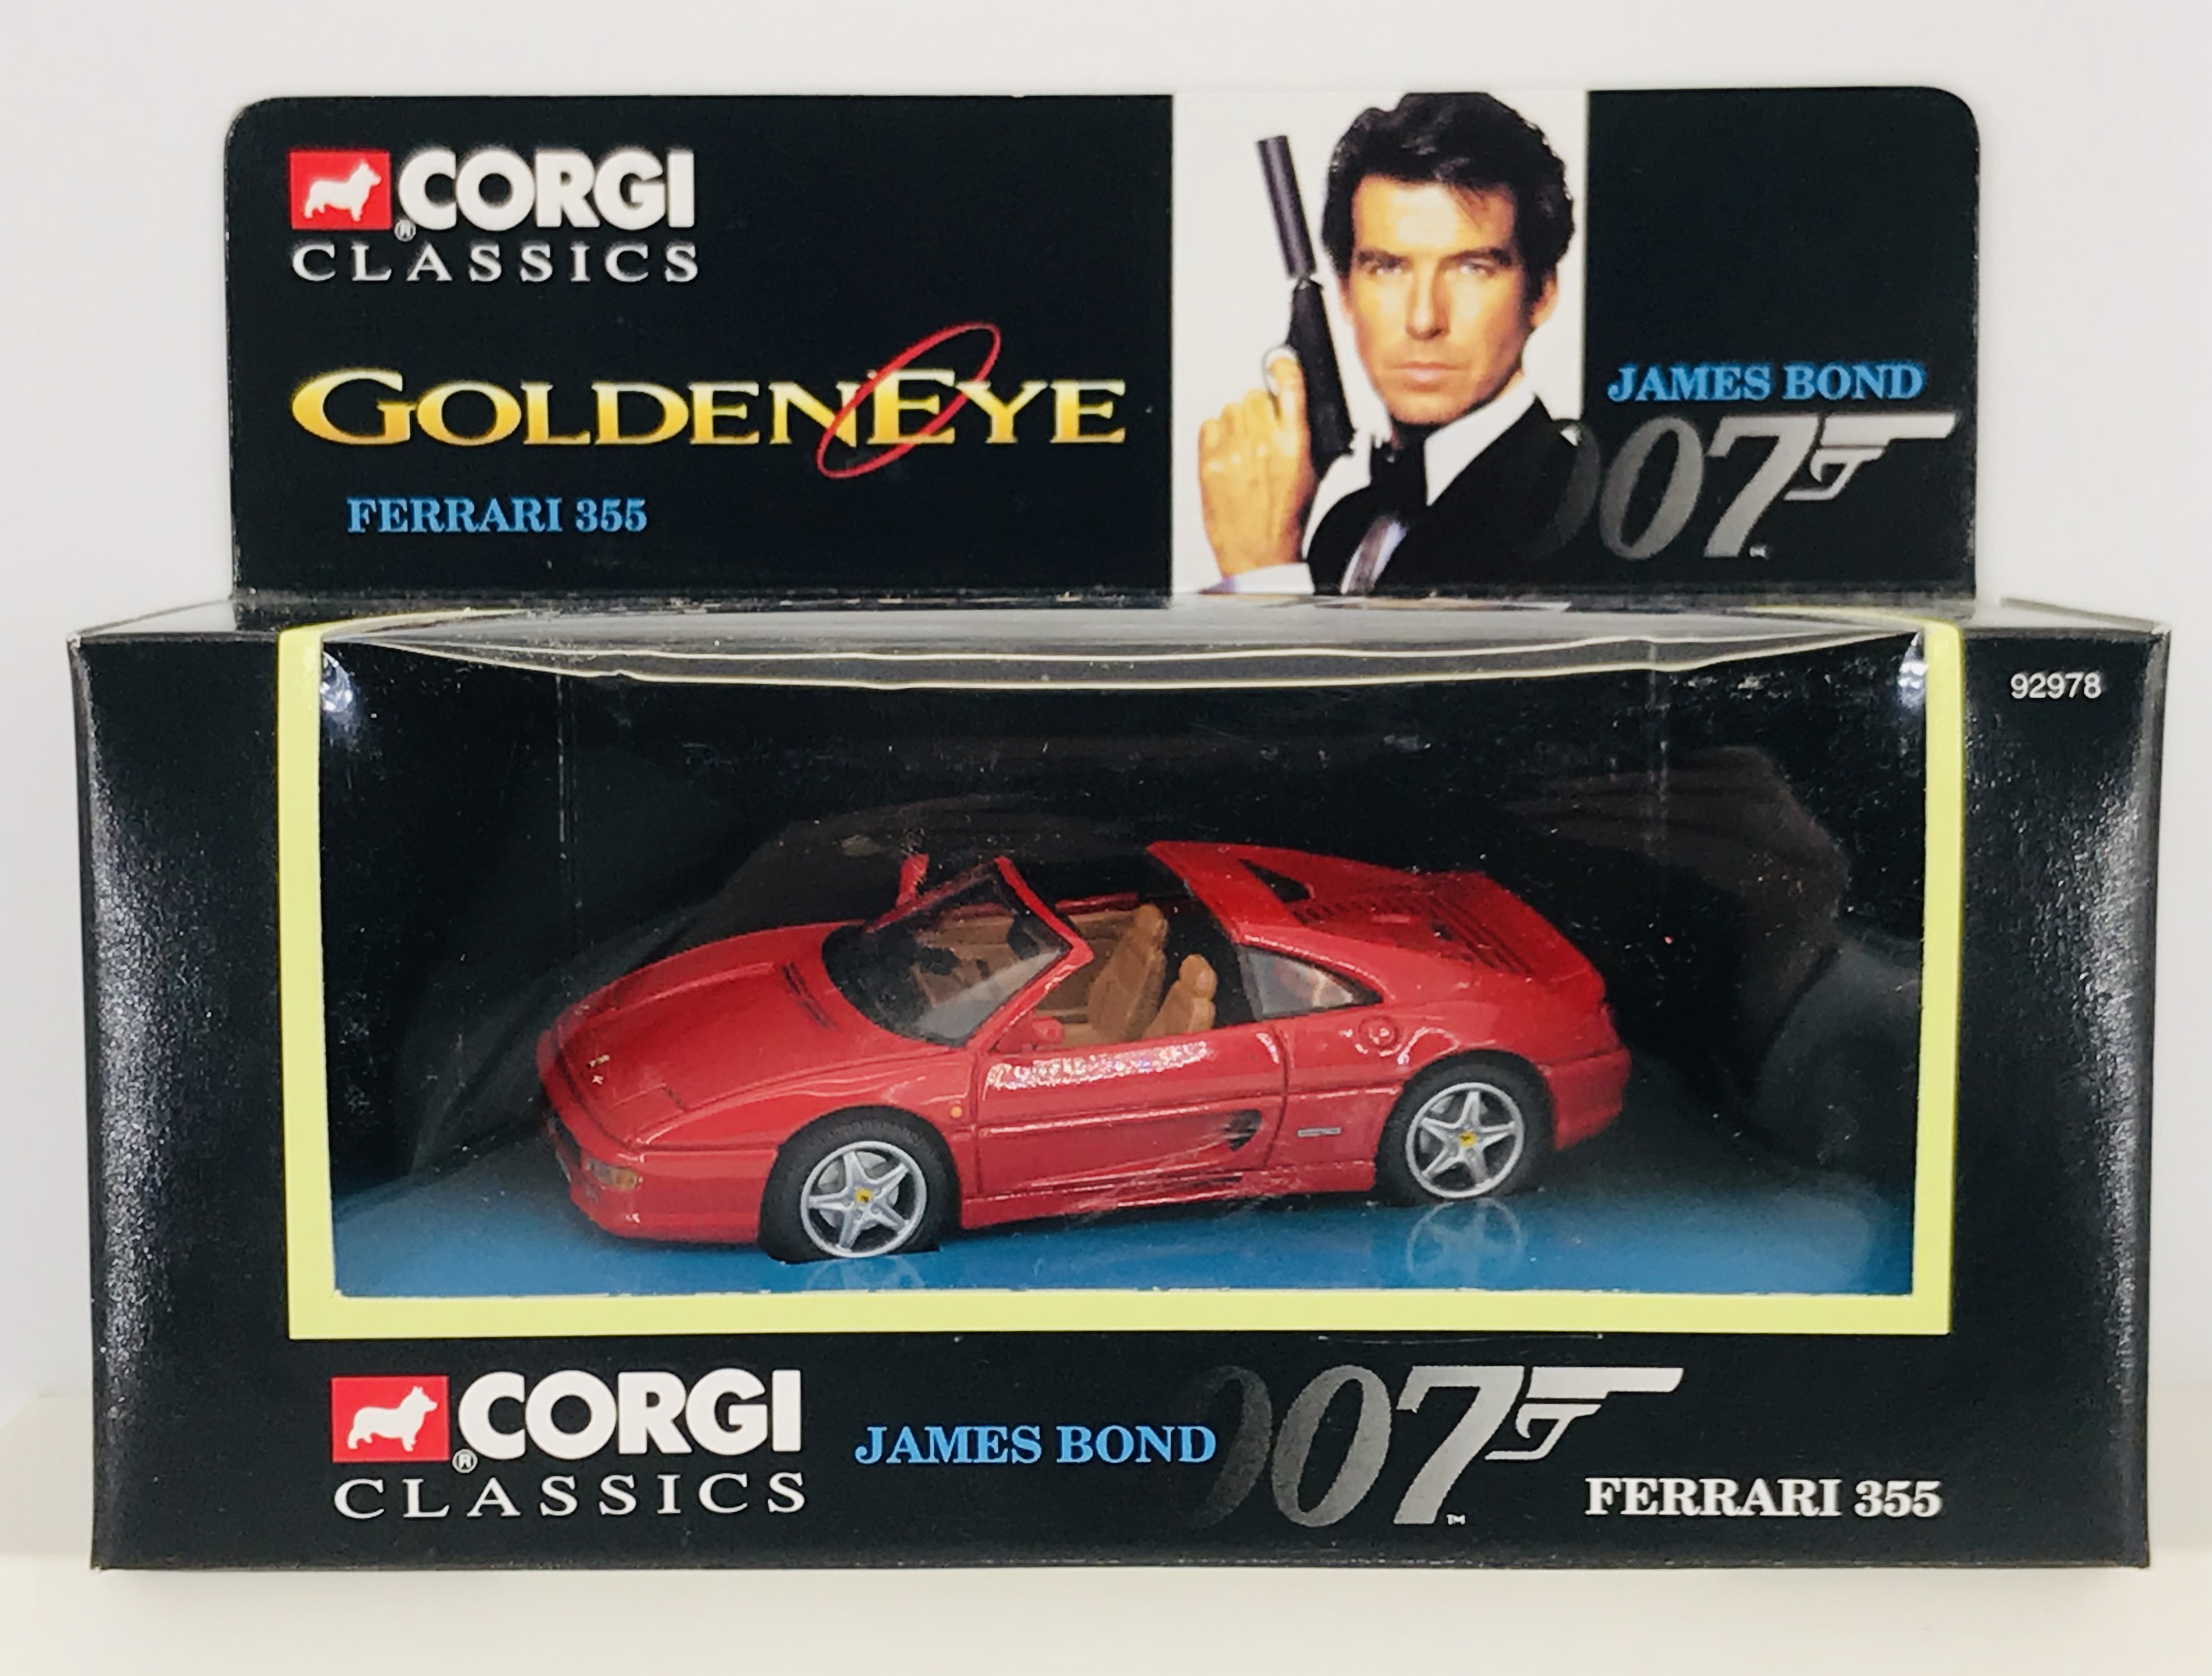 Corgi Classics 92978 James Bond Golden Eye Ferrari 355 Toy Hunter Uk Retro Vintage Toys